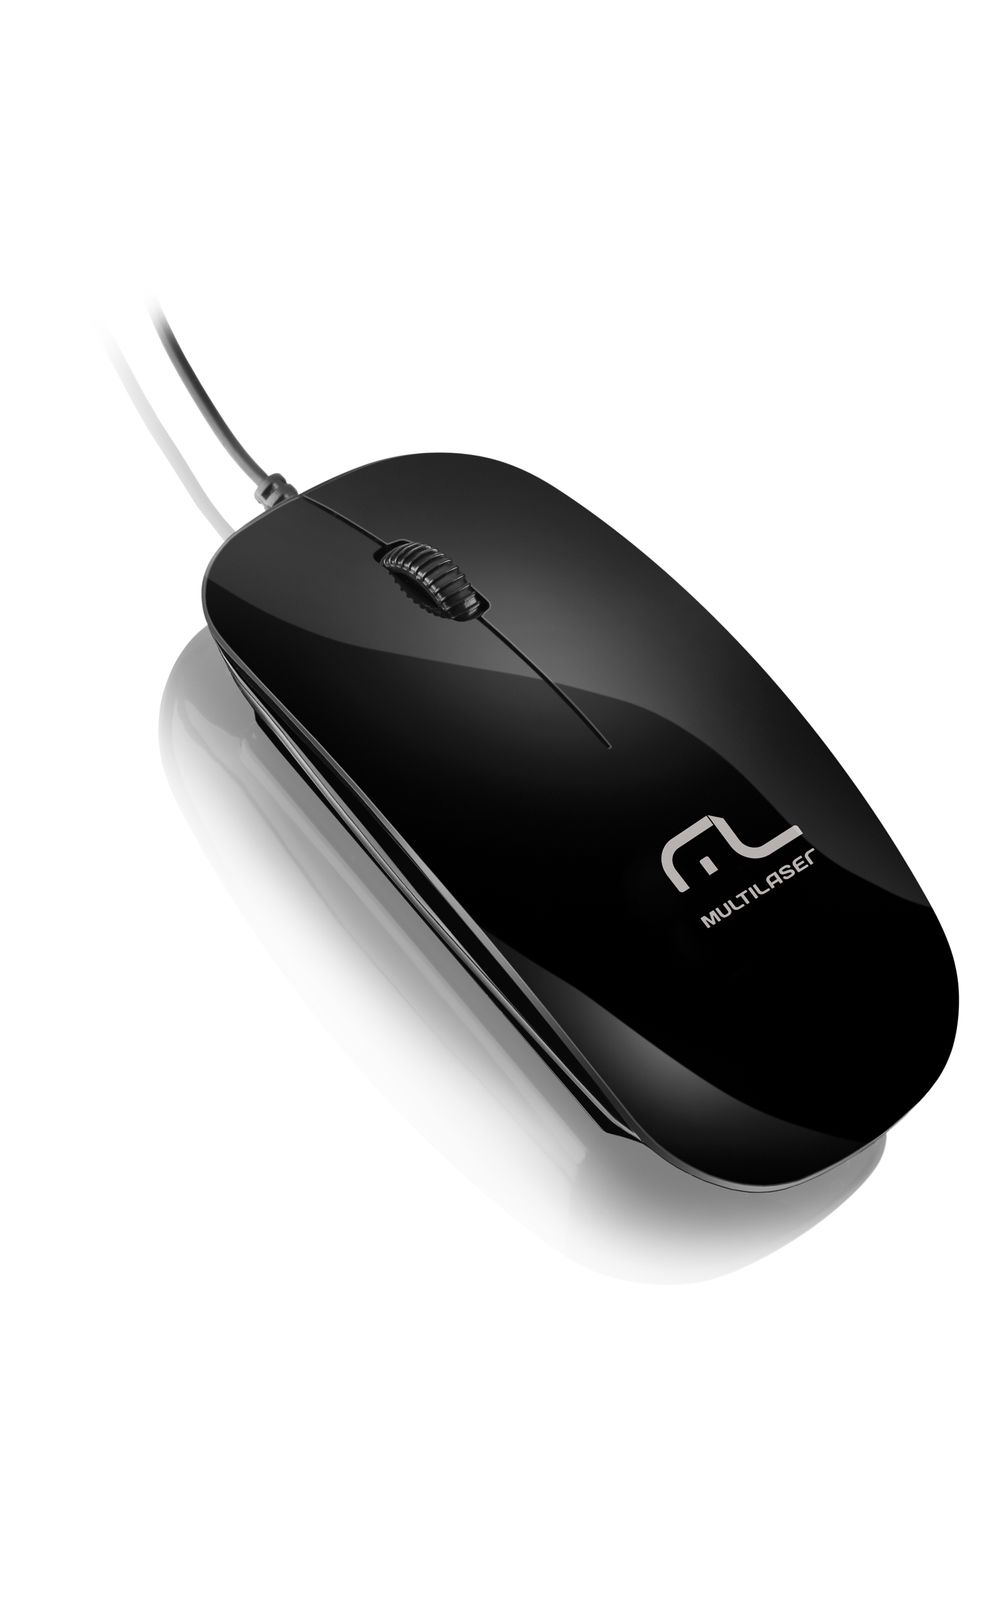 Mouse Multilaser Colors Slim Black Piano USB - MO166